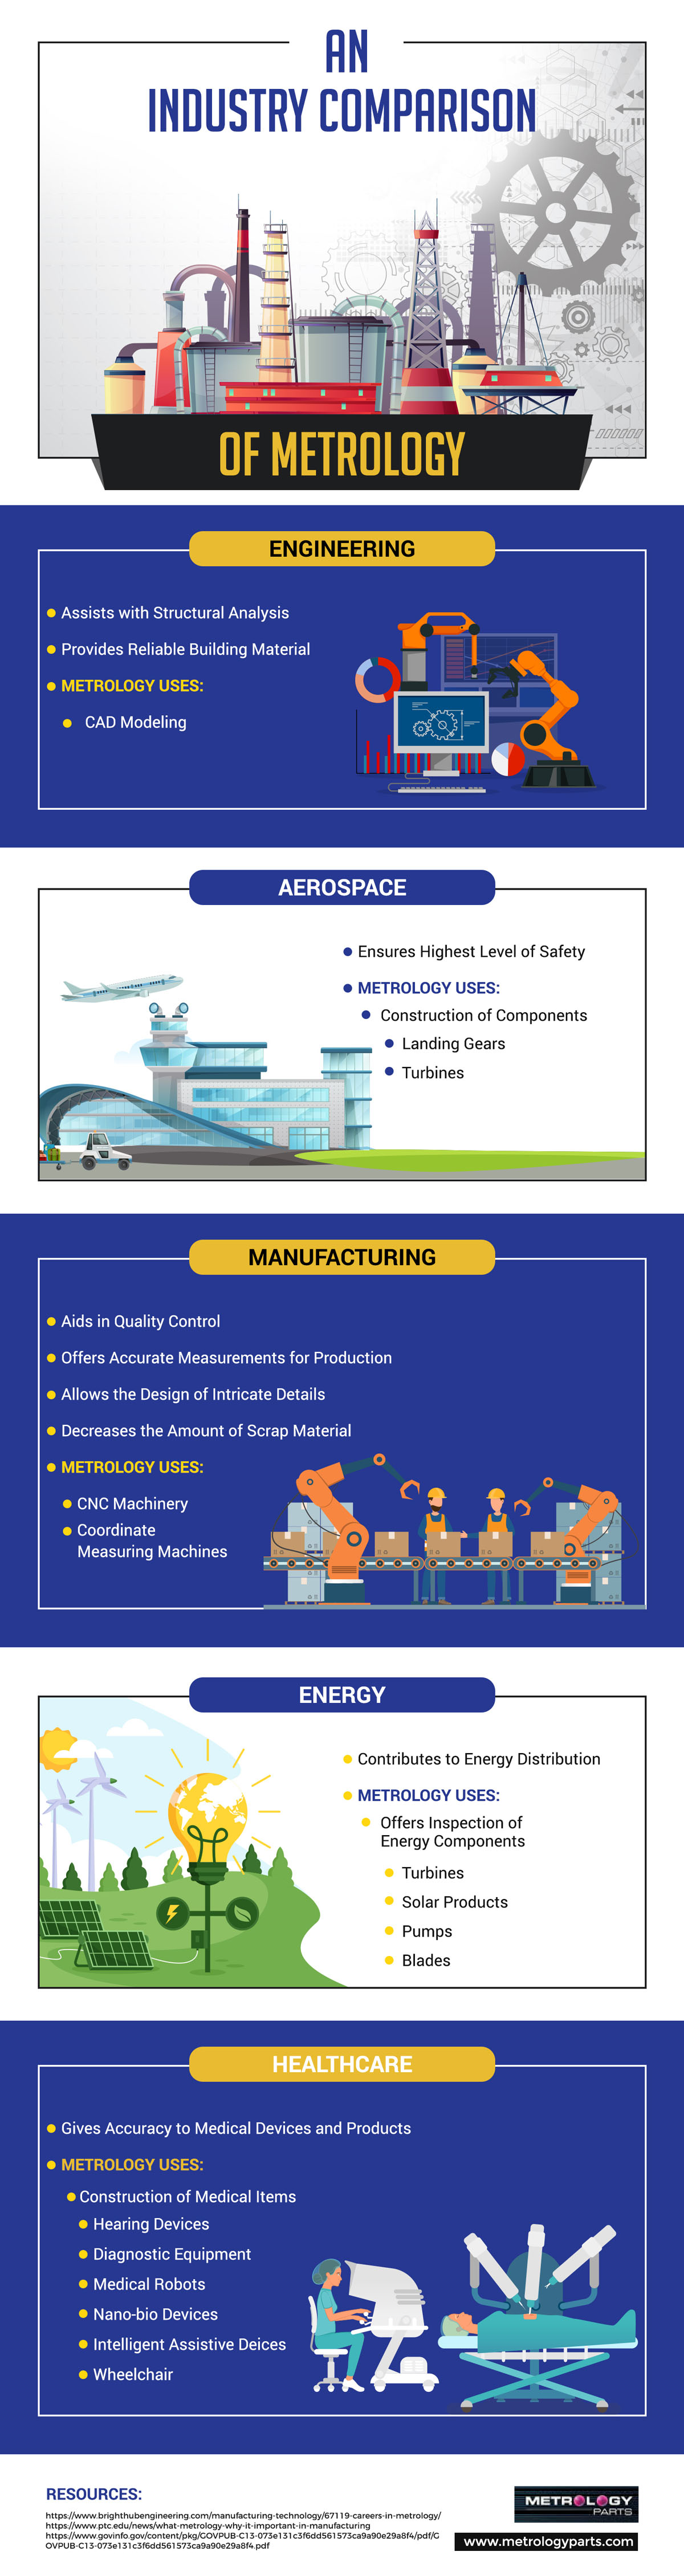 An Industry Comparison of Metrology